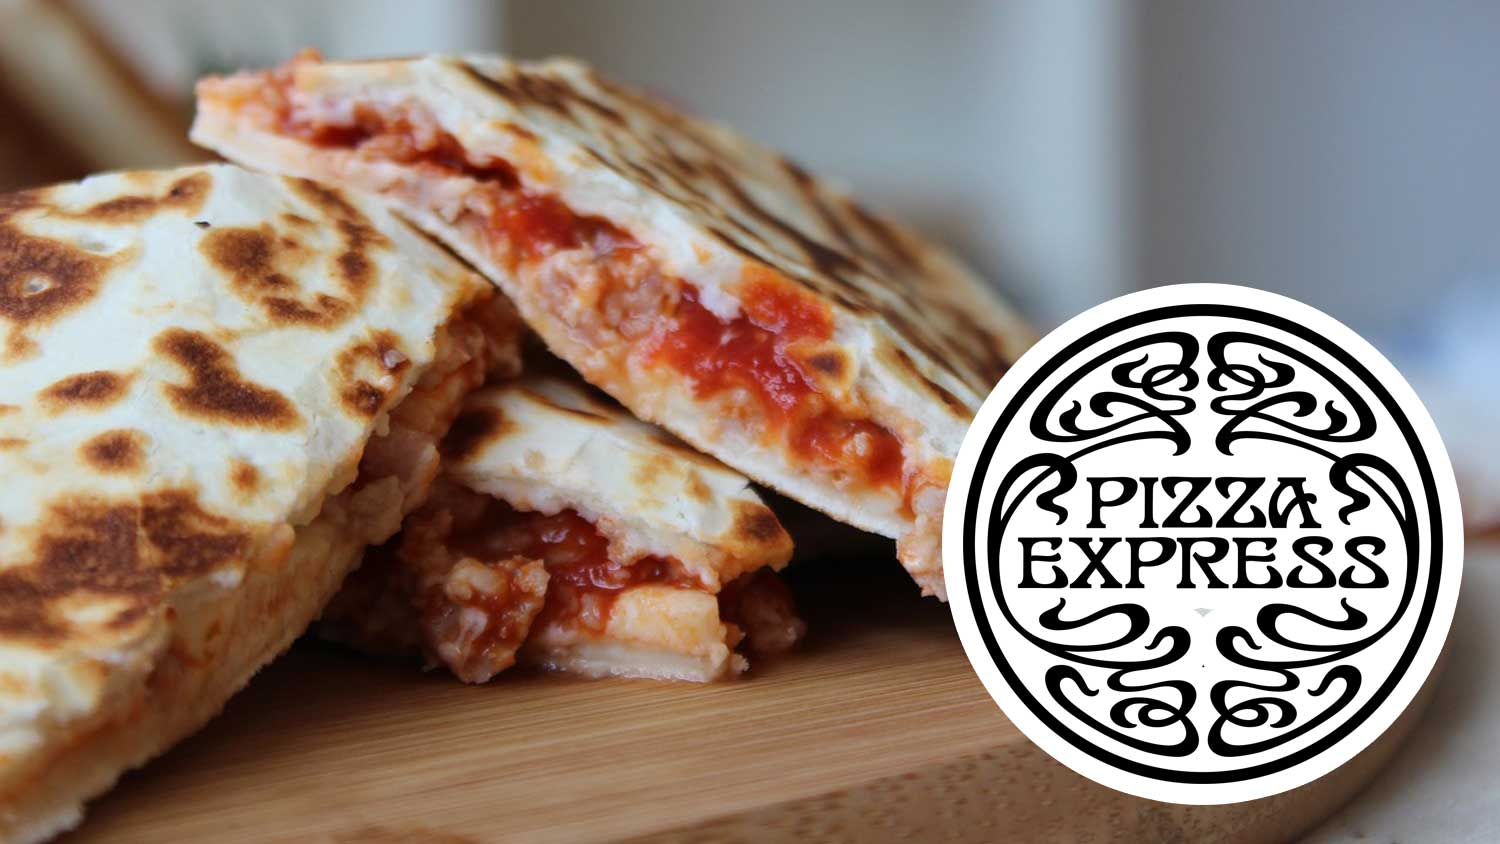 Pizza Express Is Launching Vegan Calzones